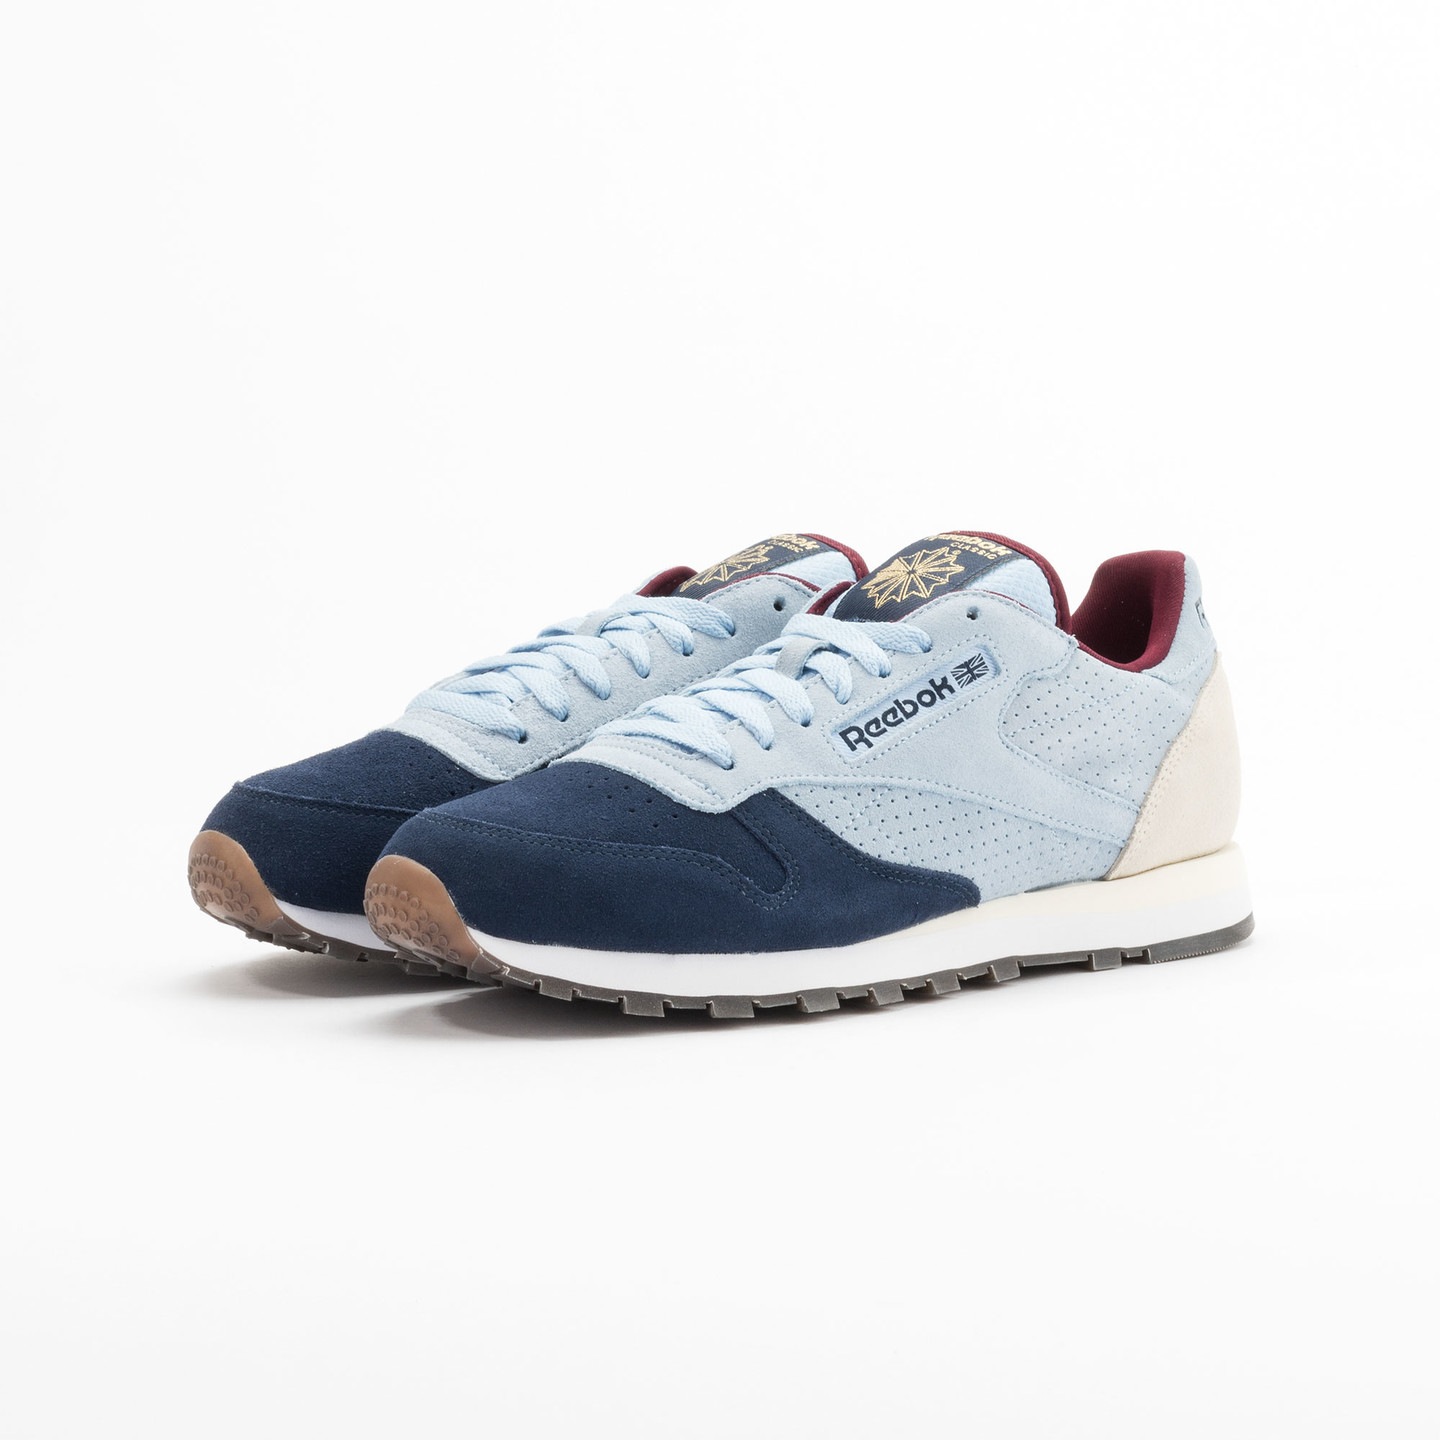 Reebok Classic Leather Int Navy / Light Blue / Sand V66829-44